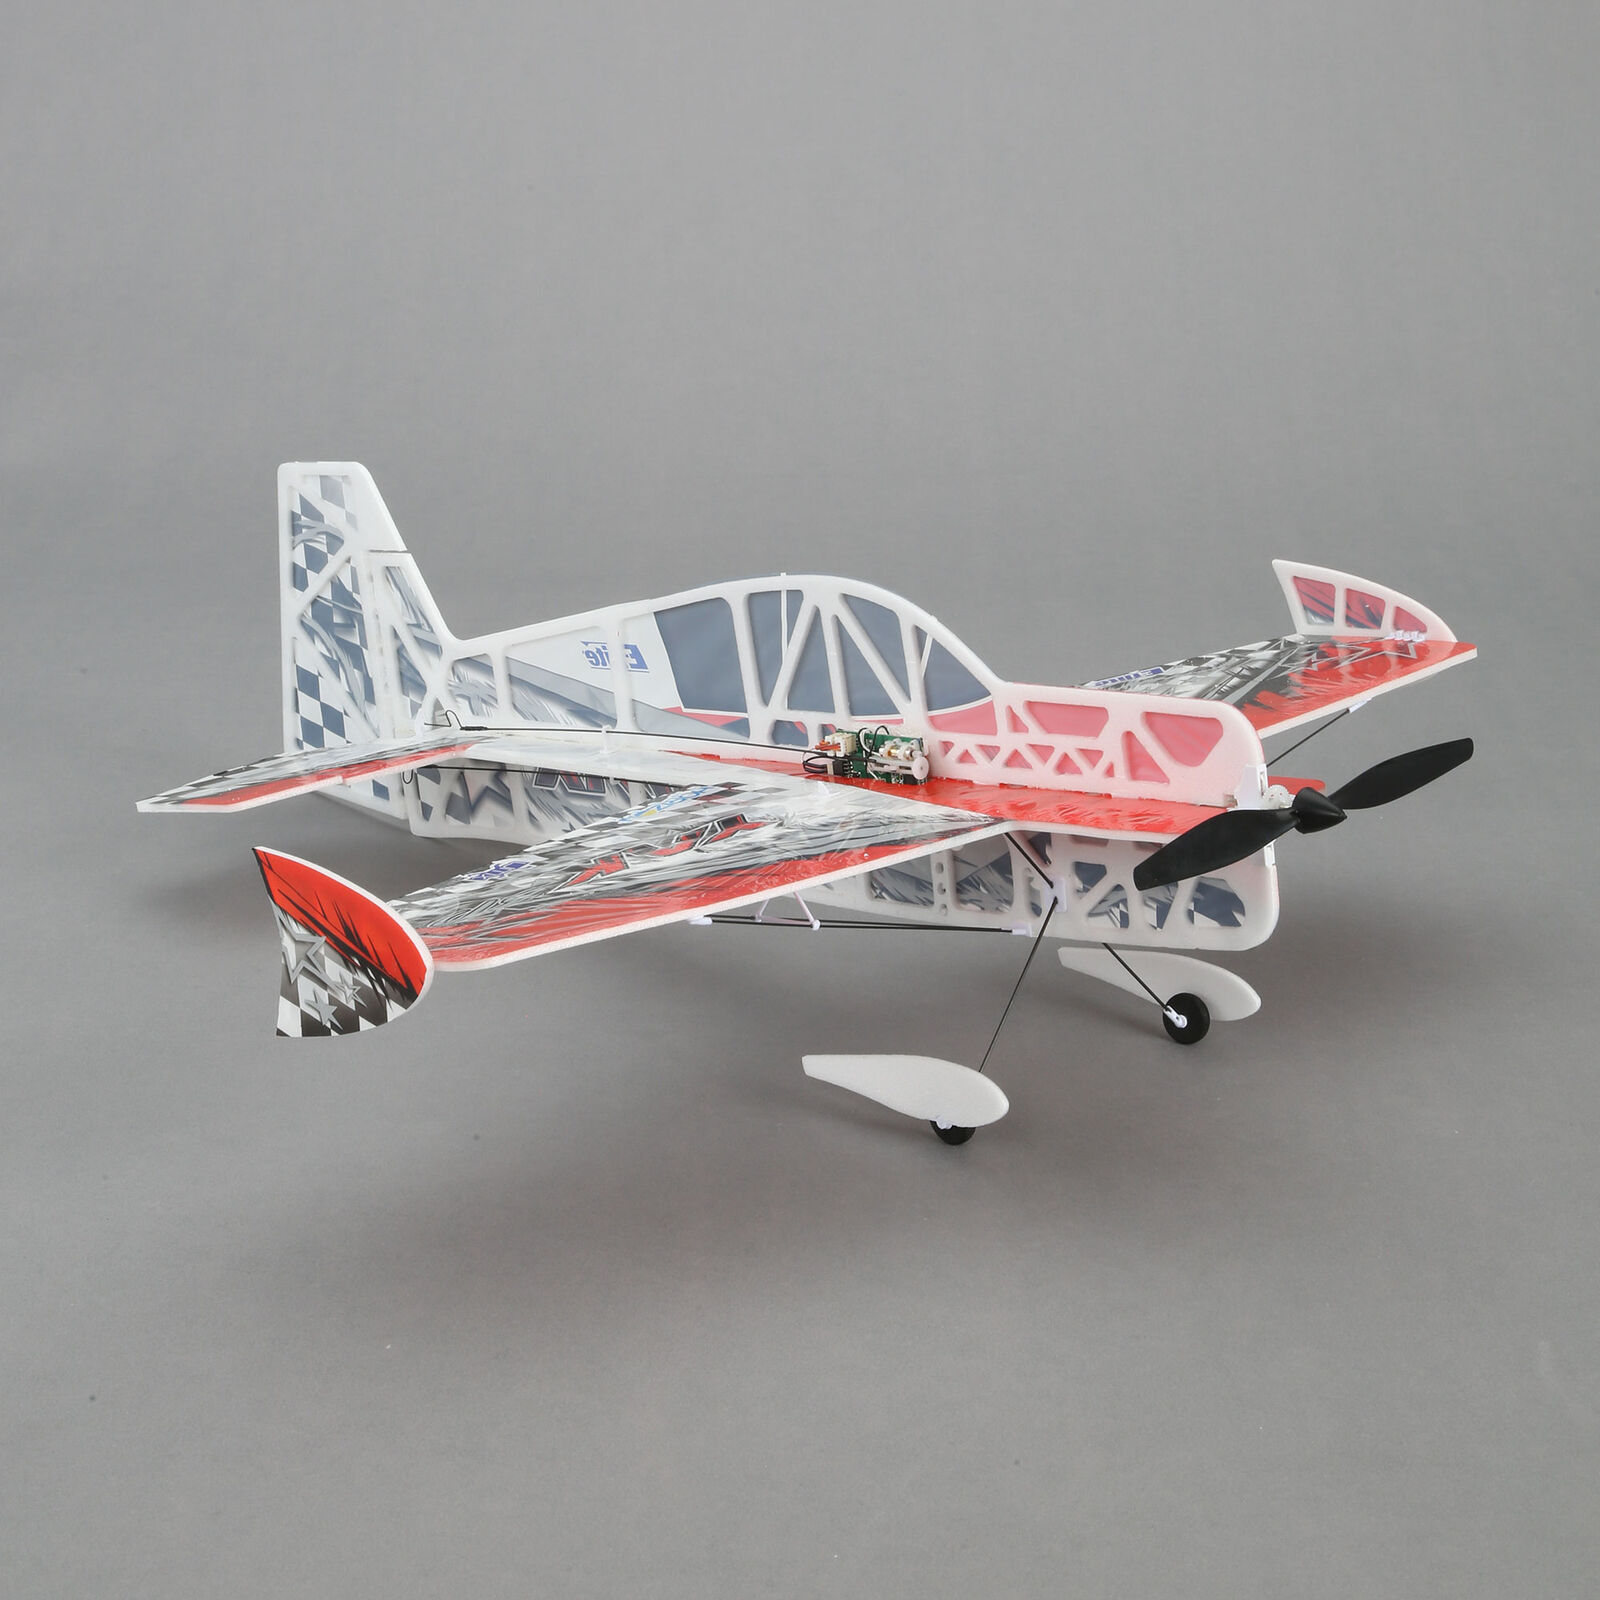 UMX Yak 54 3D BNF Basic with AS3X, 430mm